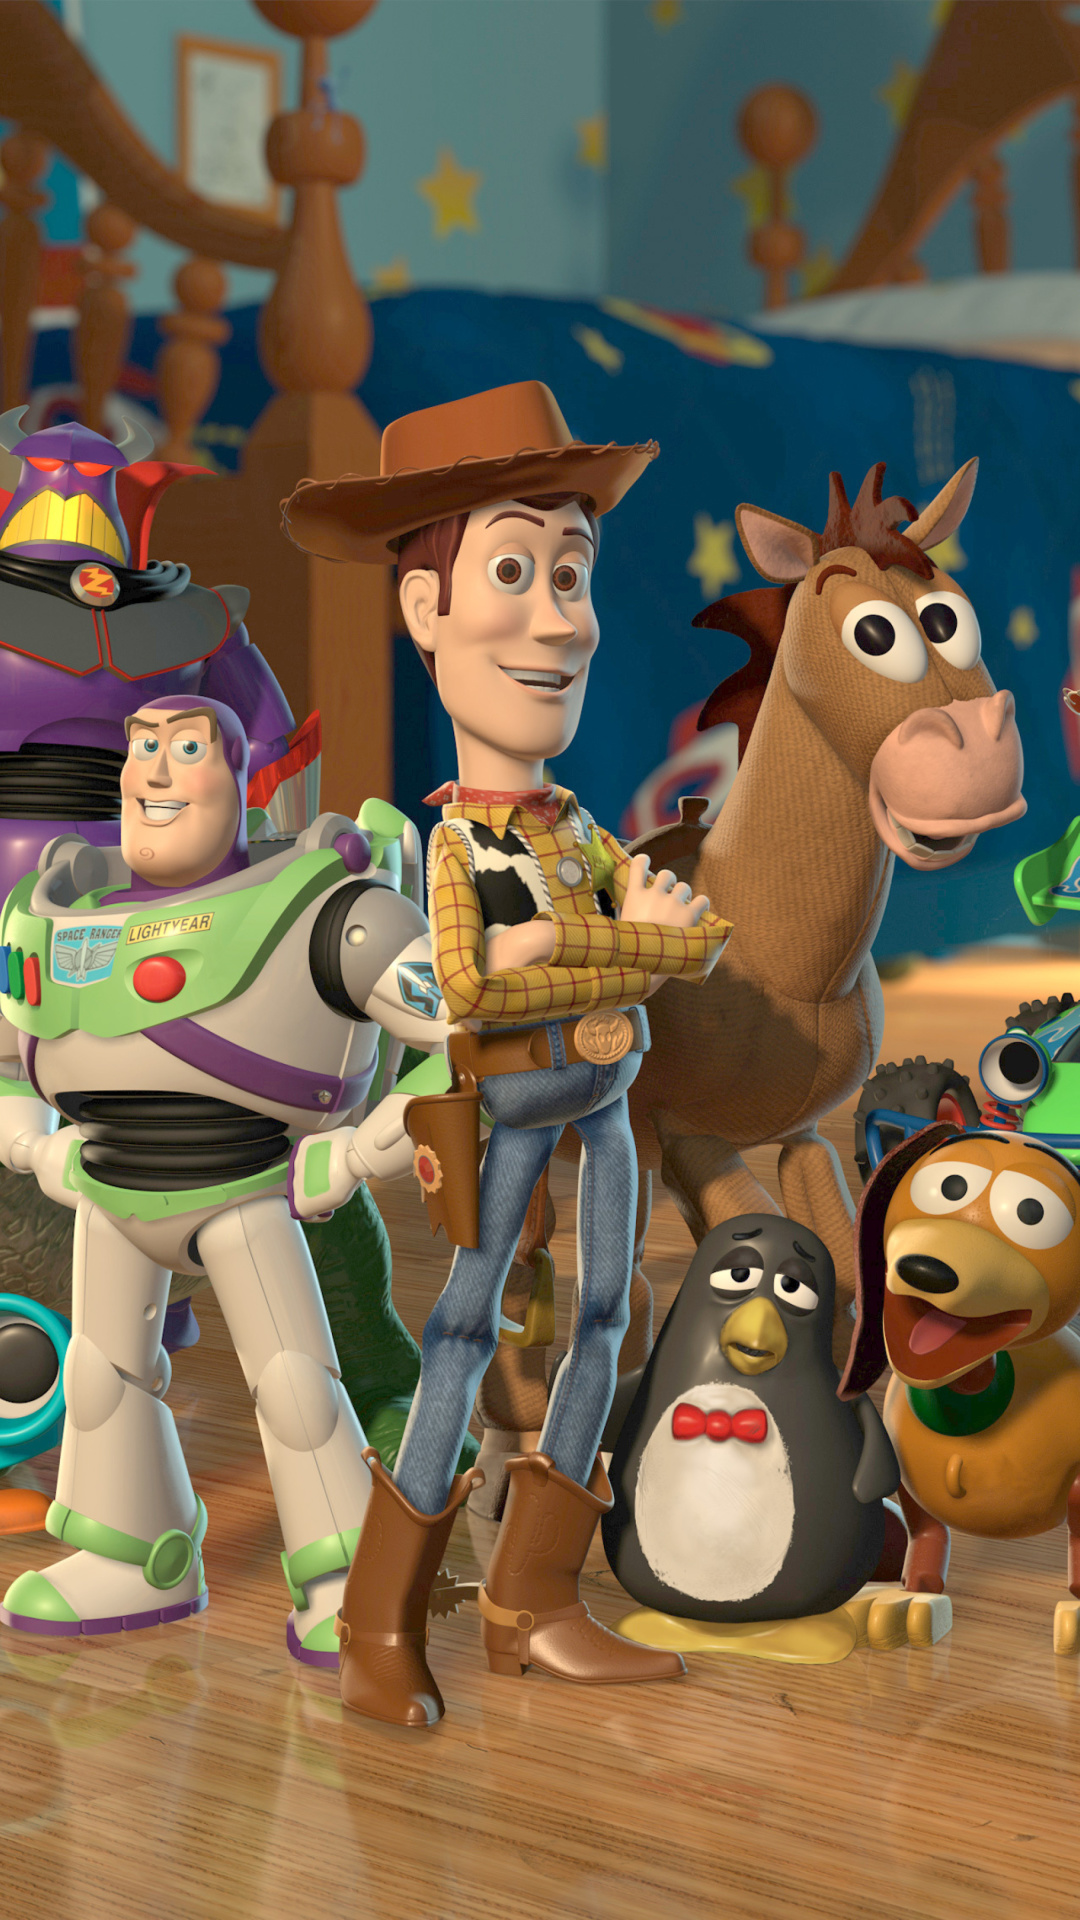 Toy Story Wallpaper for iPhone 6 Plus